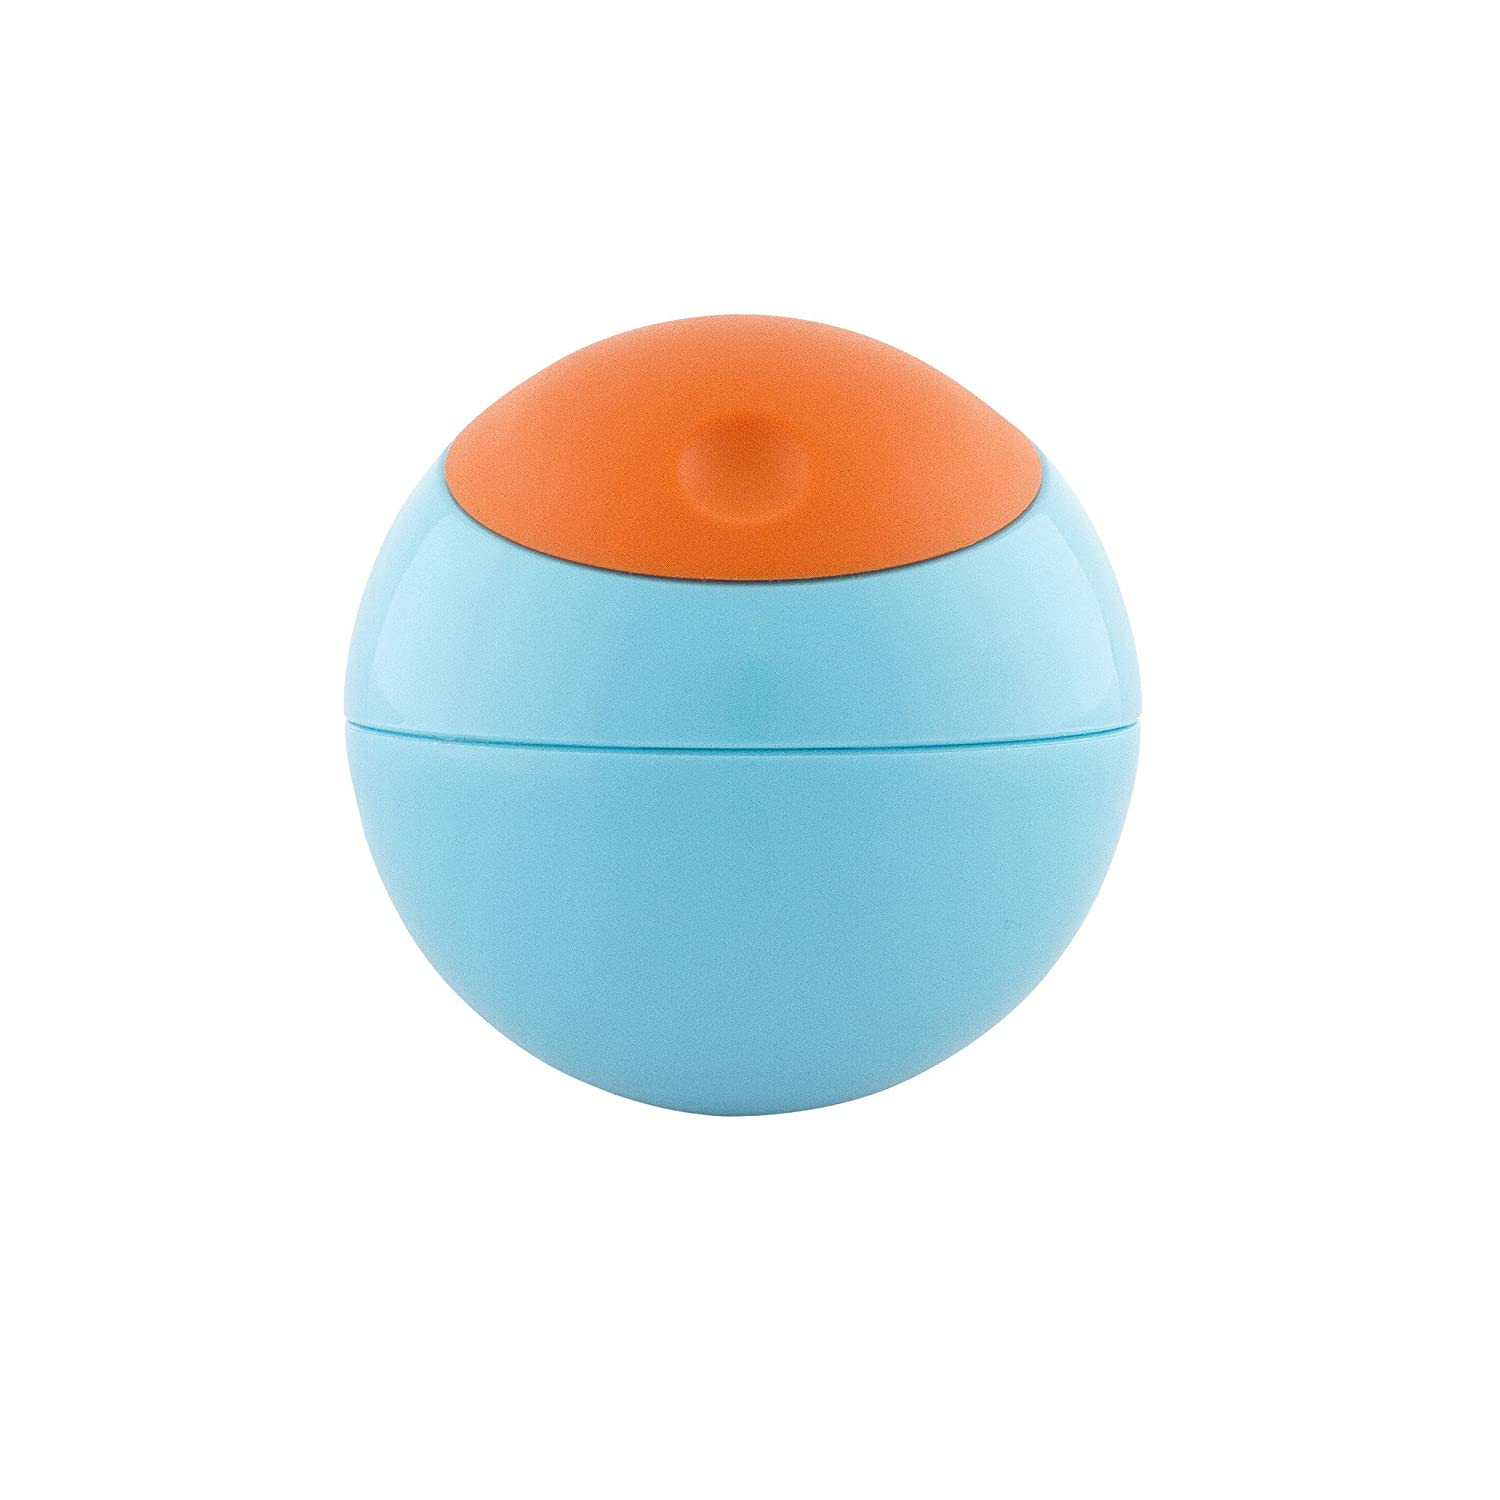 Boon Snackball, Blue/Orange TOMY B277